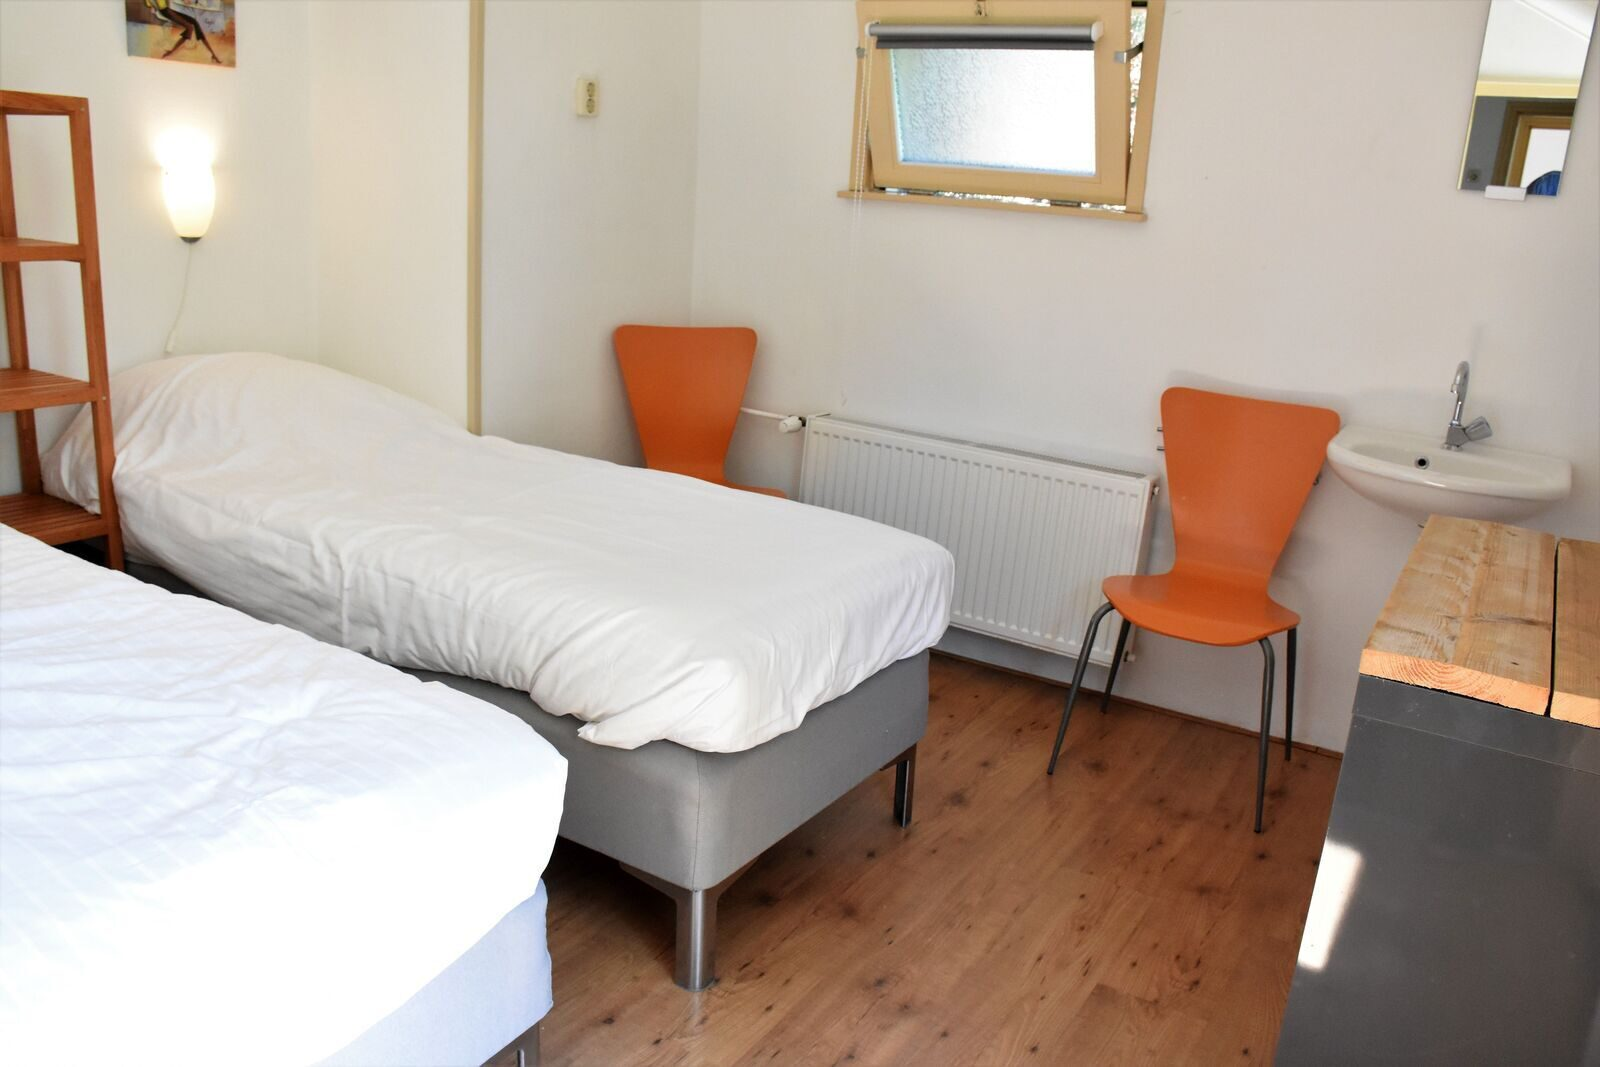 Group accommodation Vorden